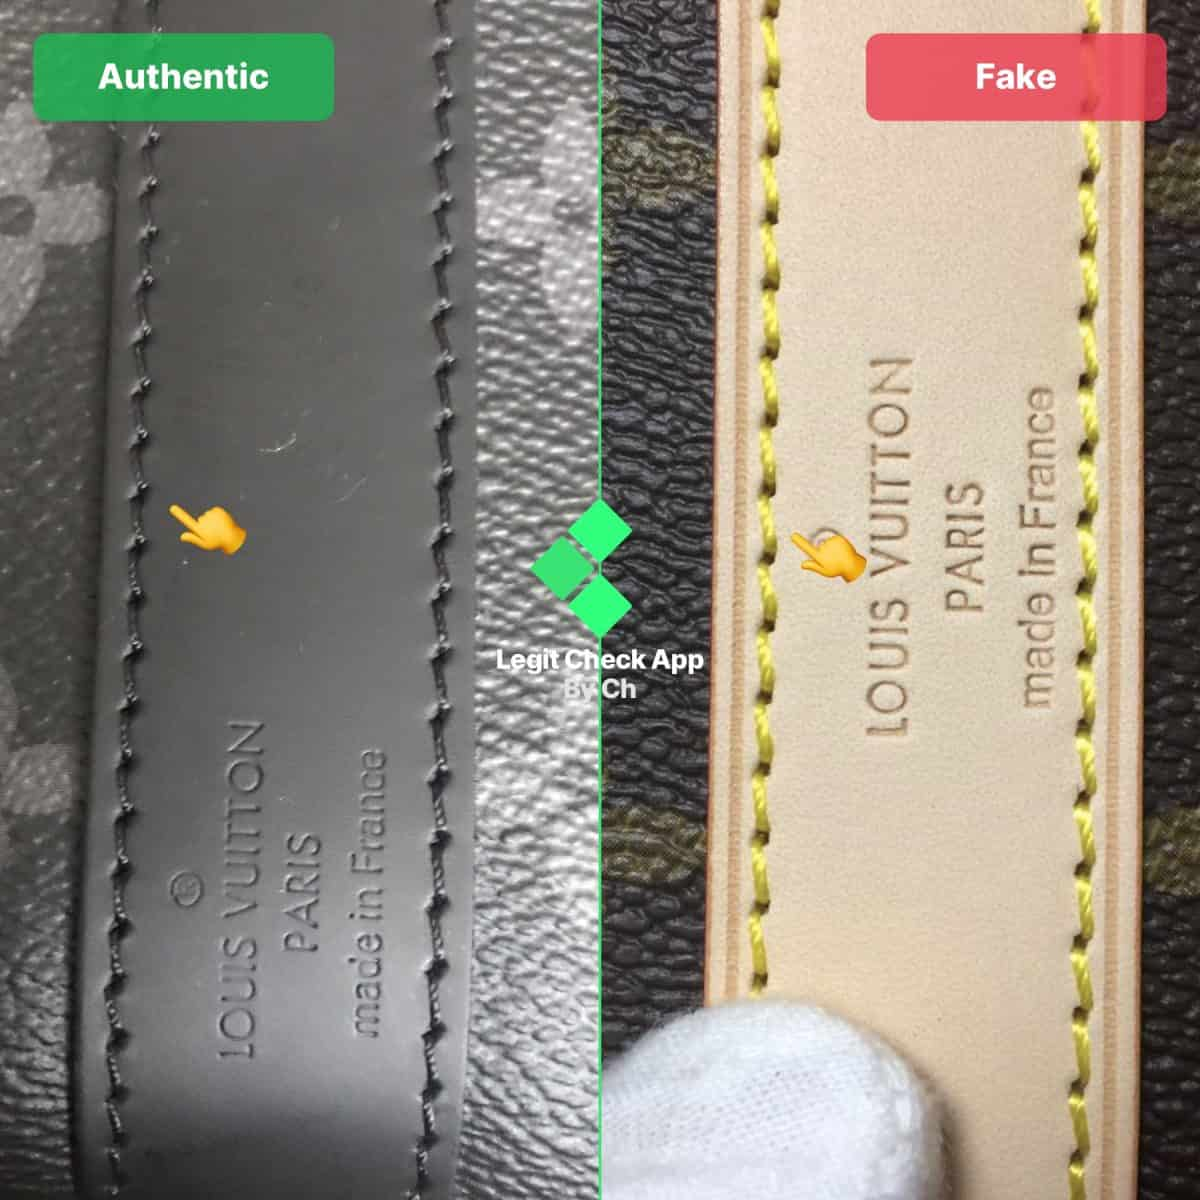 louis vuitton damier legit check